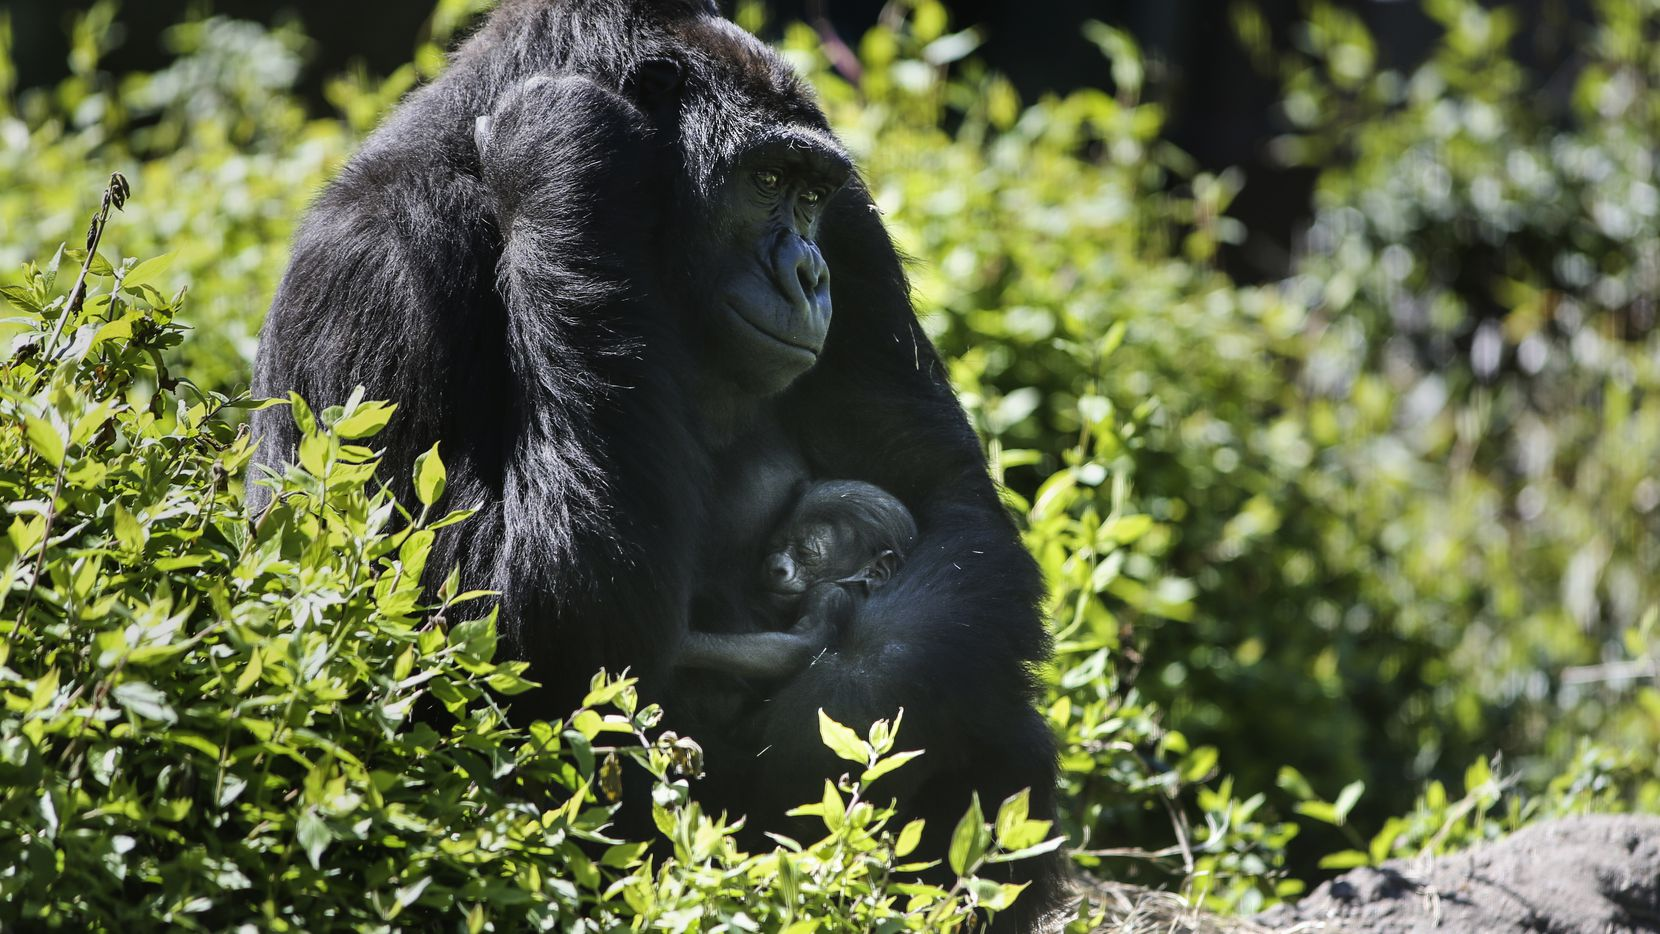 "Megan, a 13-year-old critically endangered Western lowland gorilla, holds her one-week-old baby, who is unnamed until zoo can determine gender, at the Dallas Zoo on Thursday, March 14, 2019 in Dallas. Megan delivered the baby early Thursday and has been nursing often and is doing well, according to a news release from the zoo. The baby gorilla will get a name and the zoo will announce the gender in the coming weeks. The baby's father, a silverback named Subira, also fathered 9-month-old Saambili, who was born in June and has ""already shown much interest"" in her half-sibling. Megan and Subira were paired as part of a breeding recommendation in an effort to increase the Western lowland gorilla population in North America, the zoo said. (Ryan Michalesko/The Dallas Morning News)"